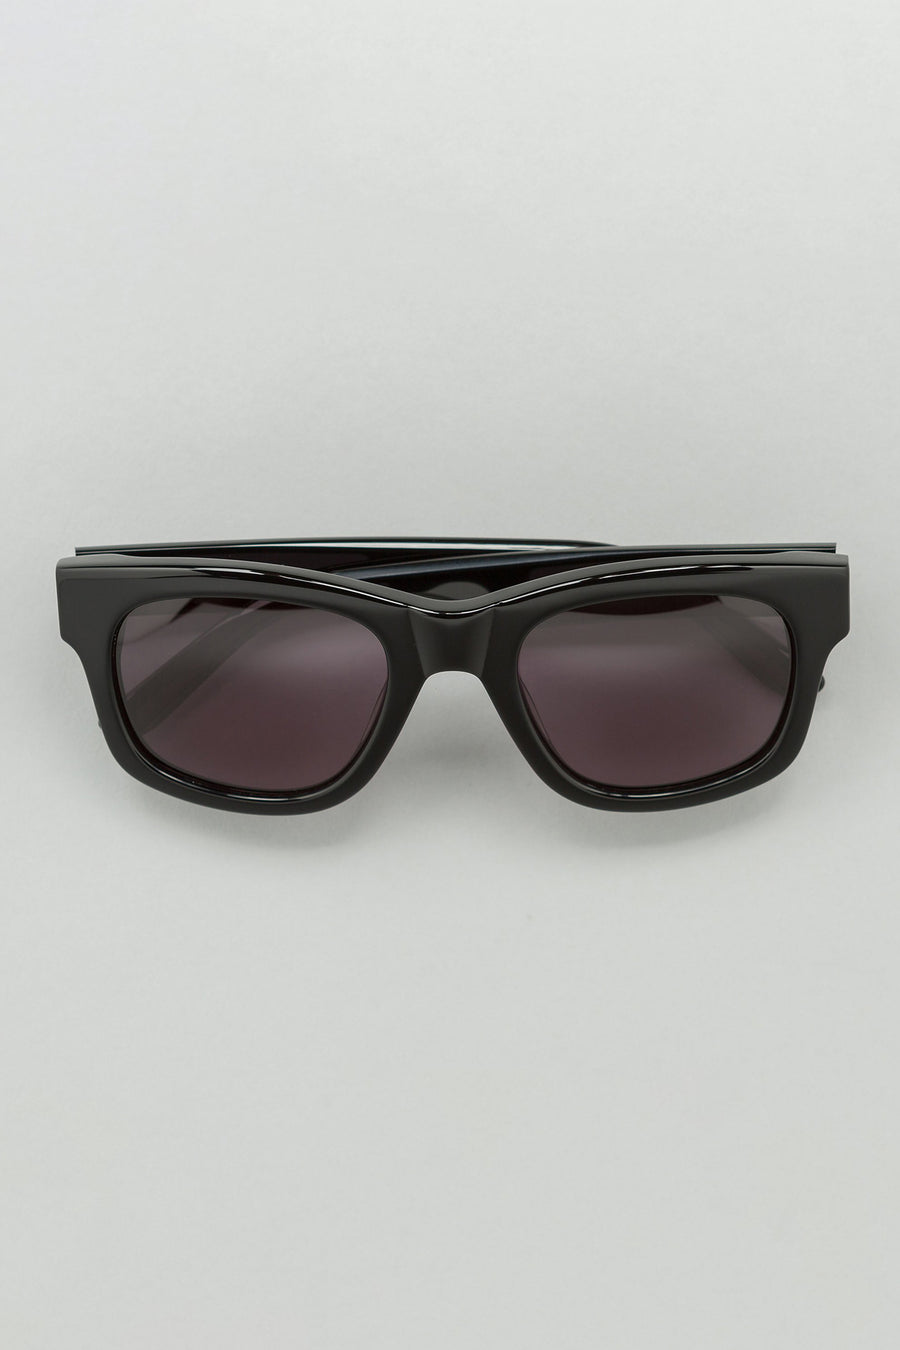 Sun Buddies Bibi Sunglass in Black - Notre